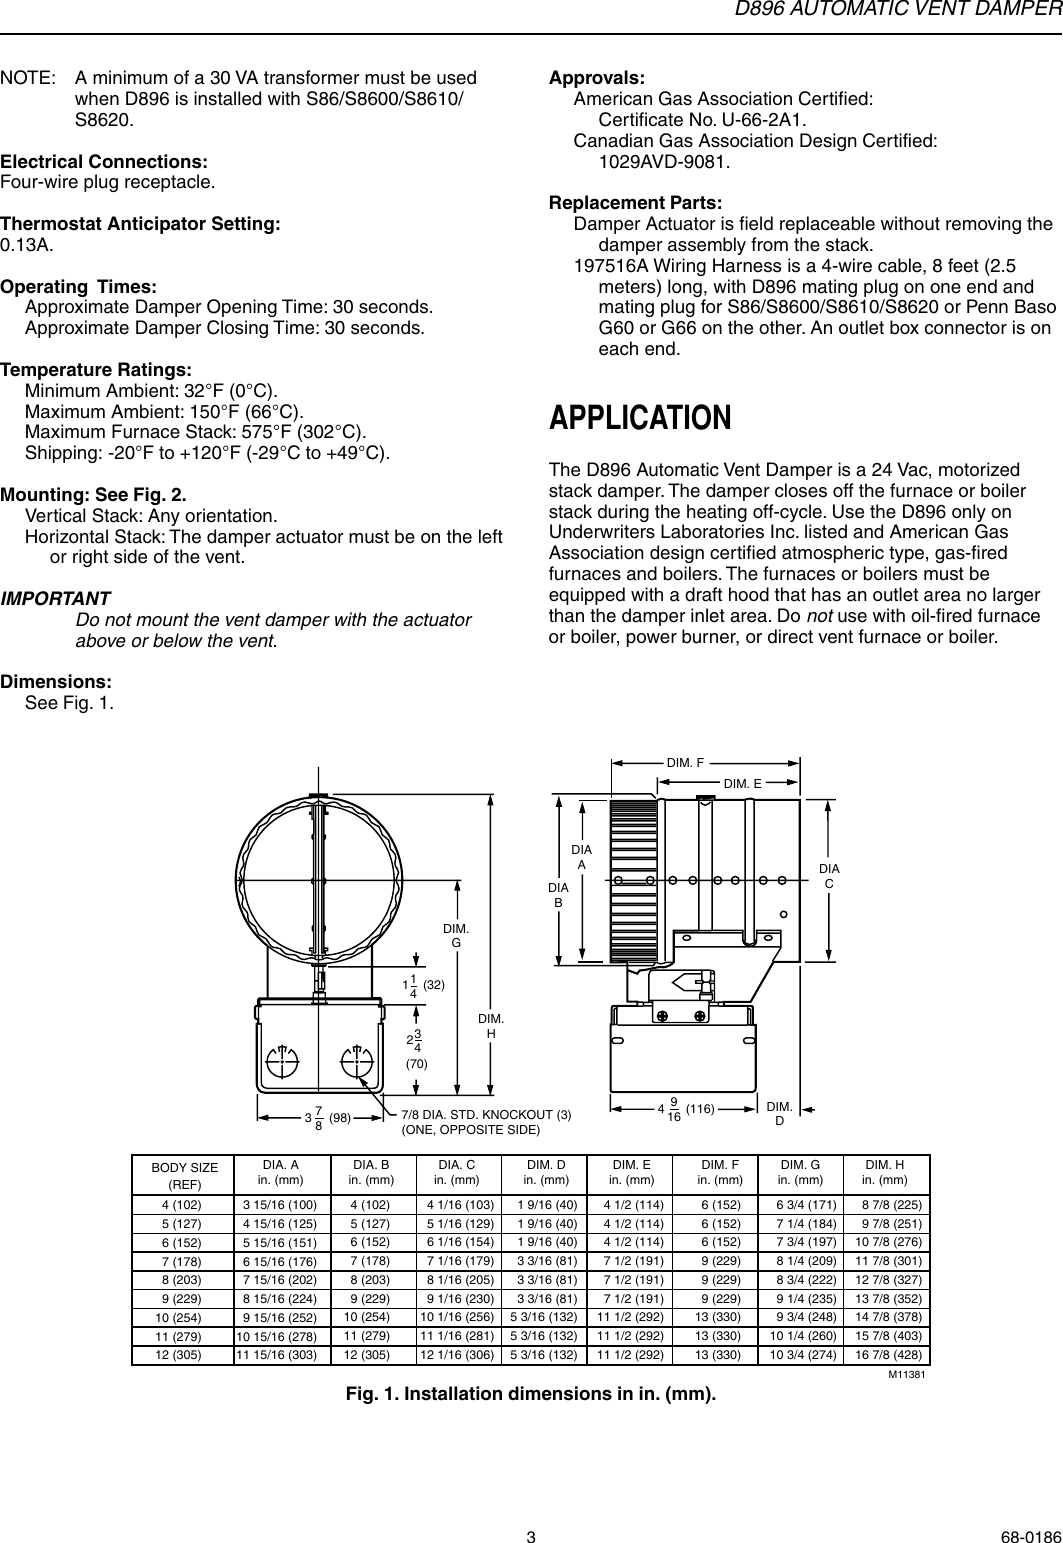 Honeywell Automatic Vent Damper D896 Users Manual 68 0186